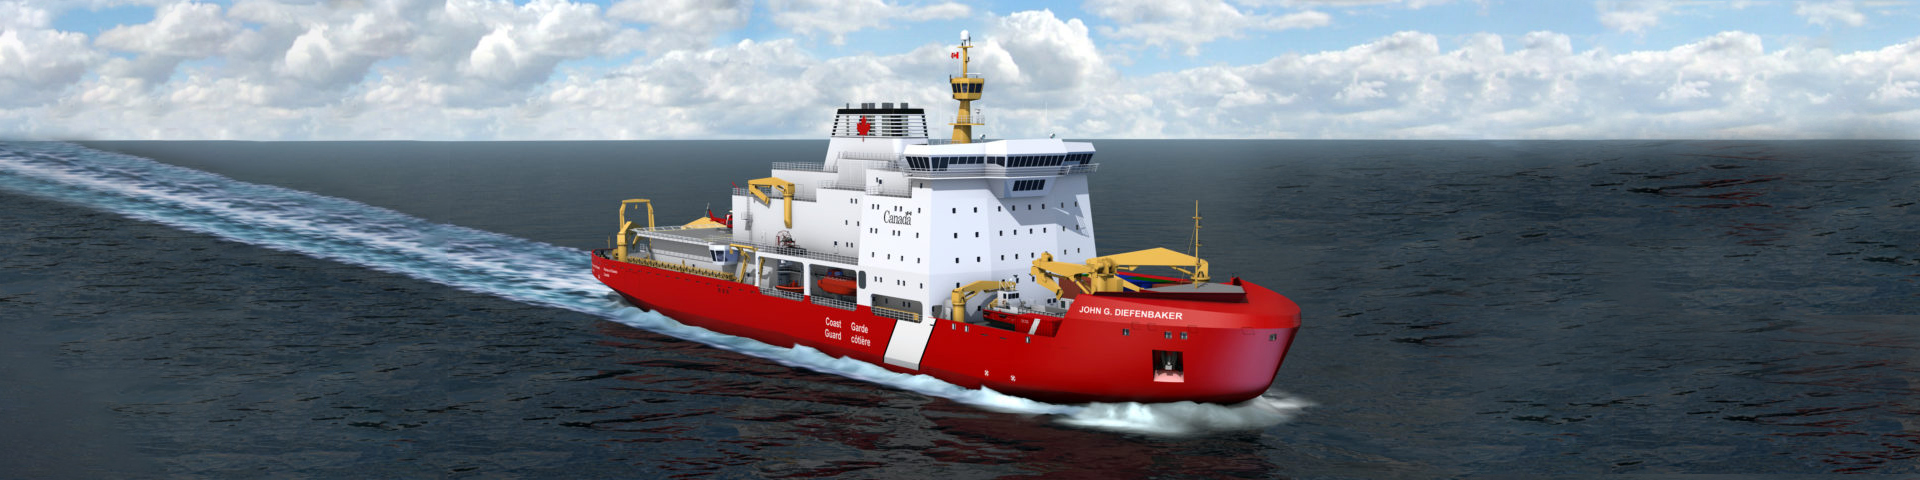 VardMarine designs icebreakersand ice-capable ships such as the Polar Icebreaker, currently proposed to be built by Seaspan. Credit: Vard